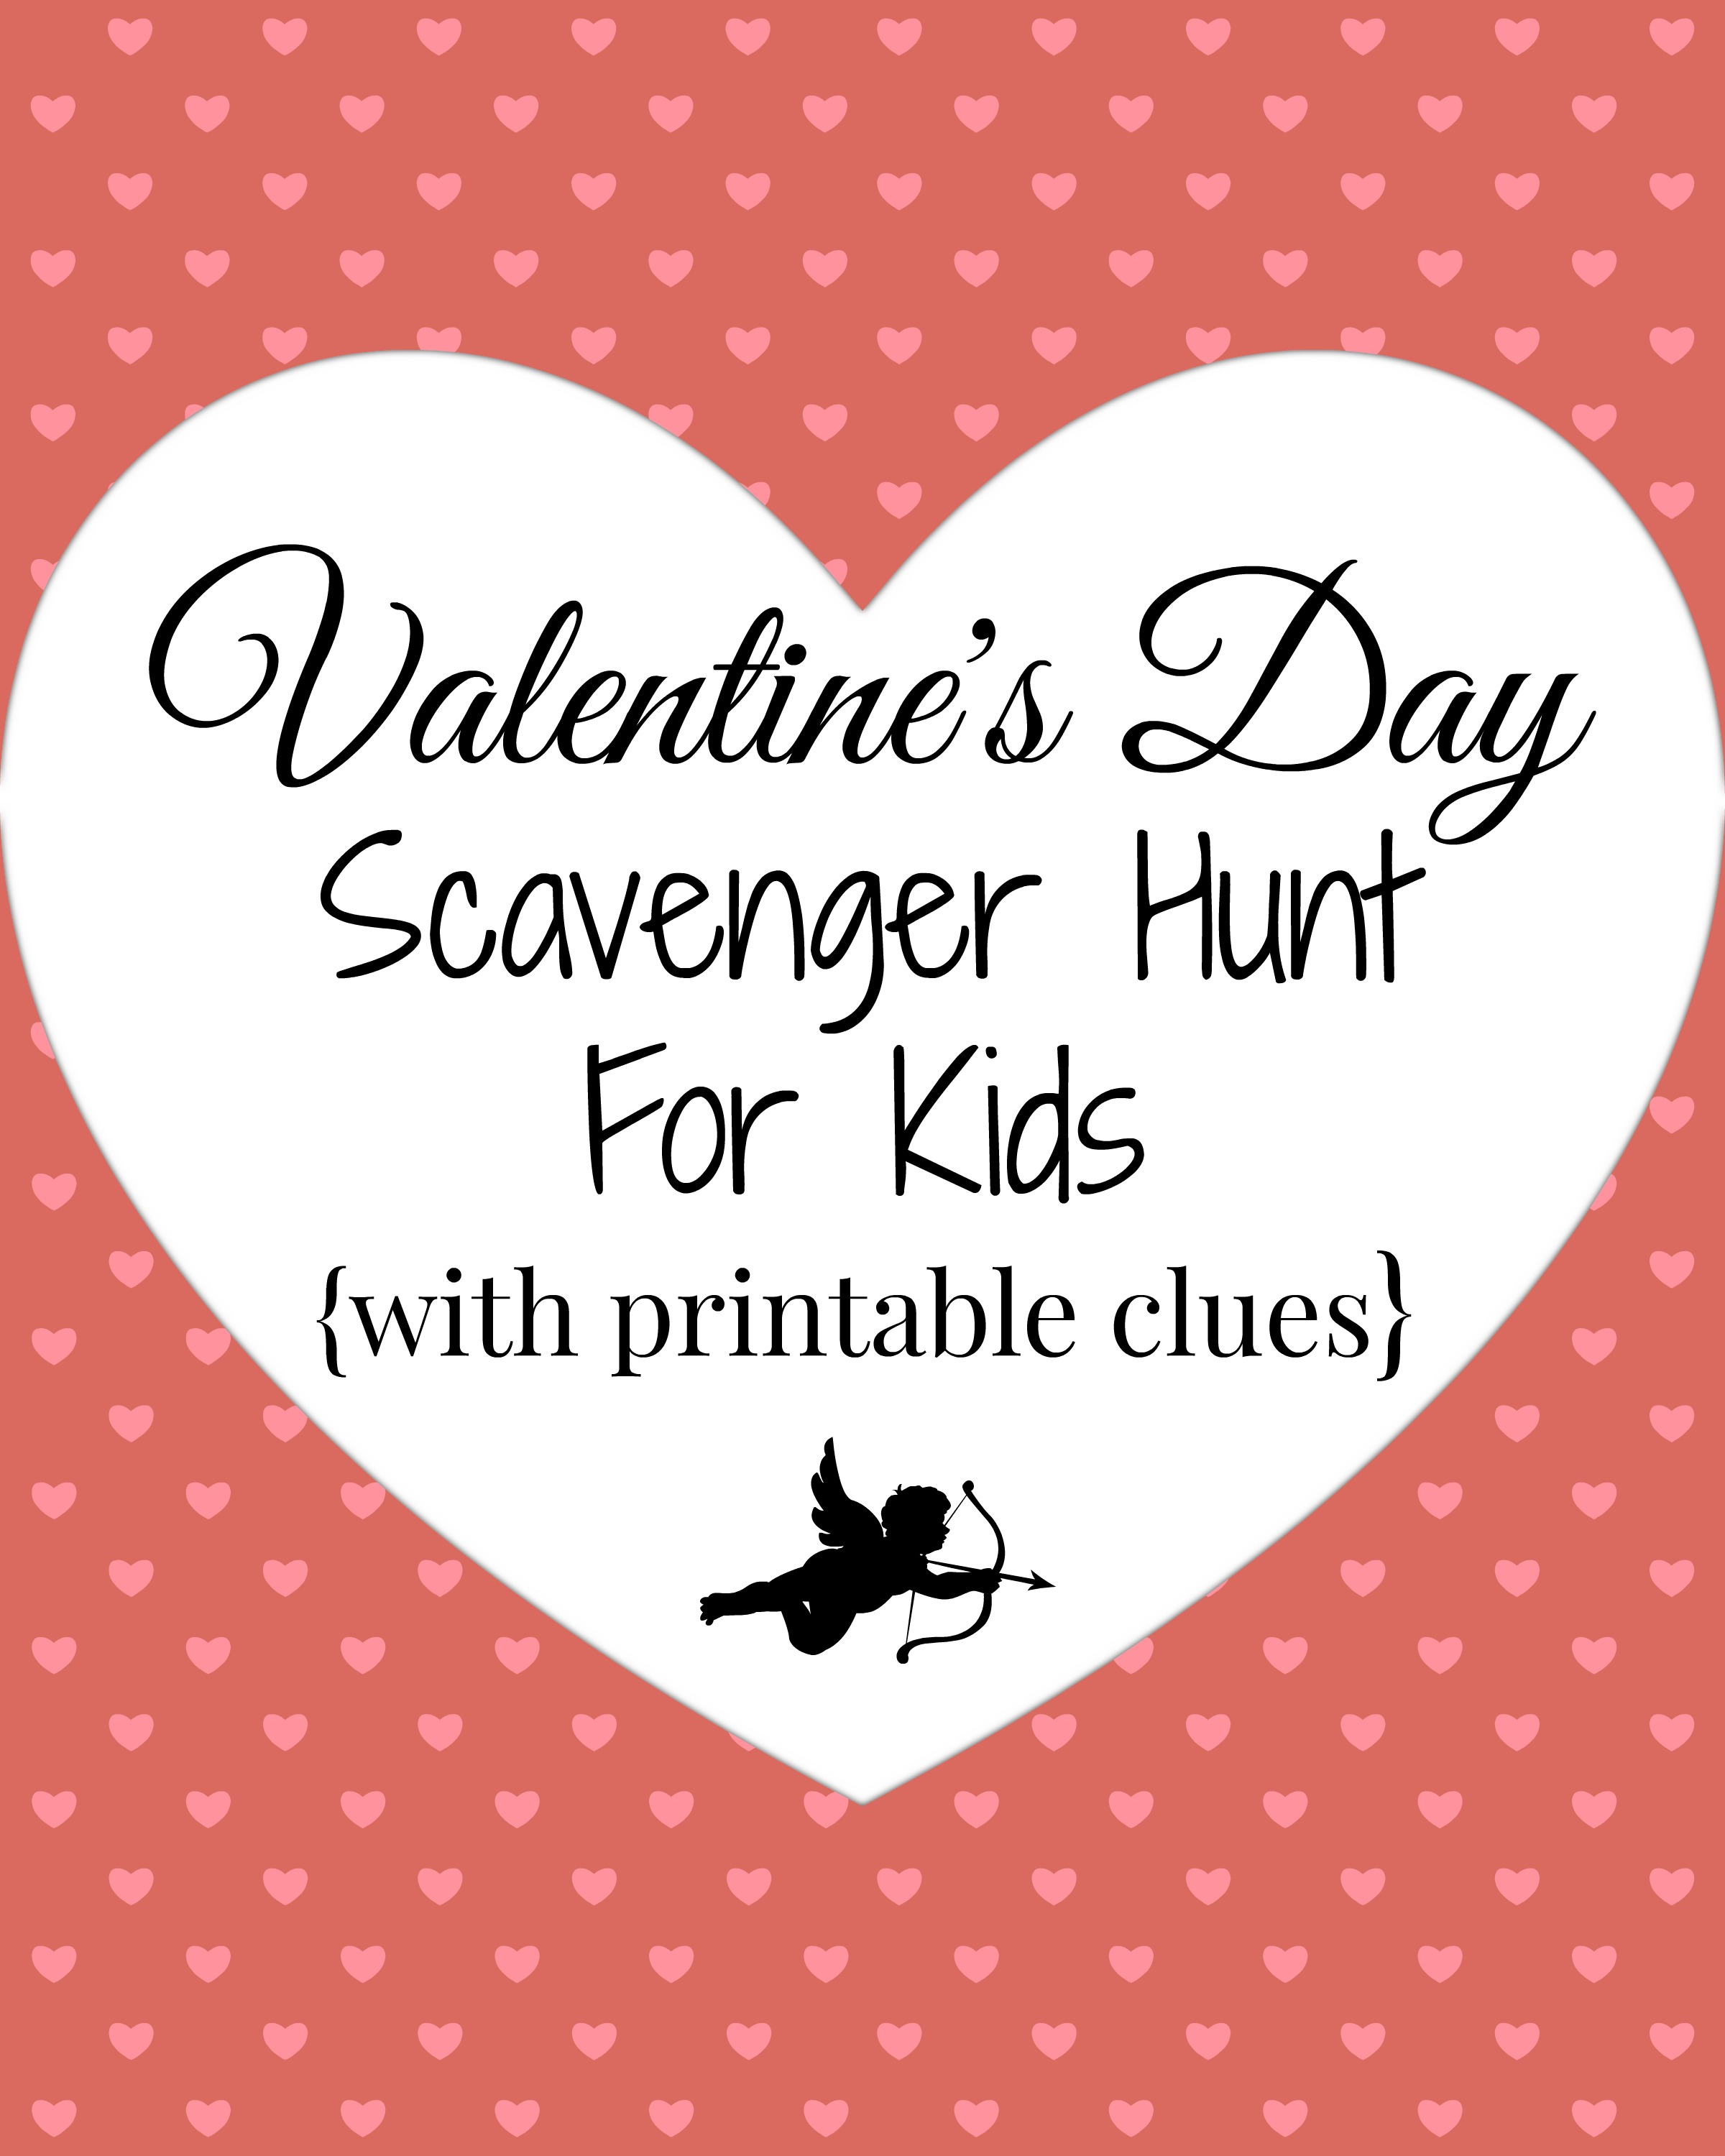 Valentine's Day Scavenger Hunt (with printable clues!)~A Fun Family Tradition